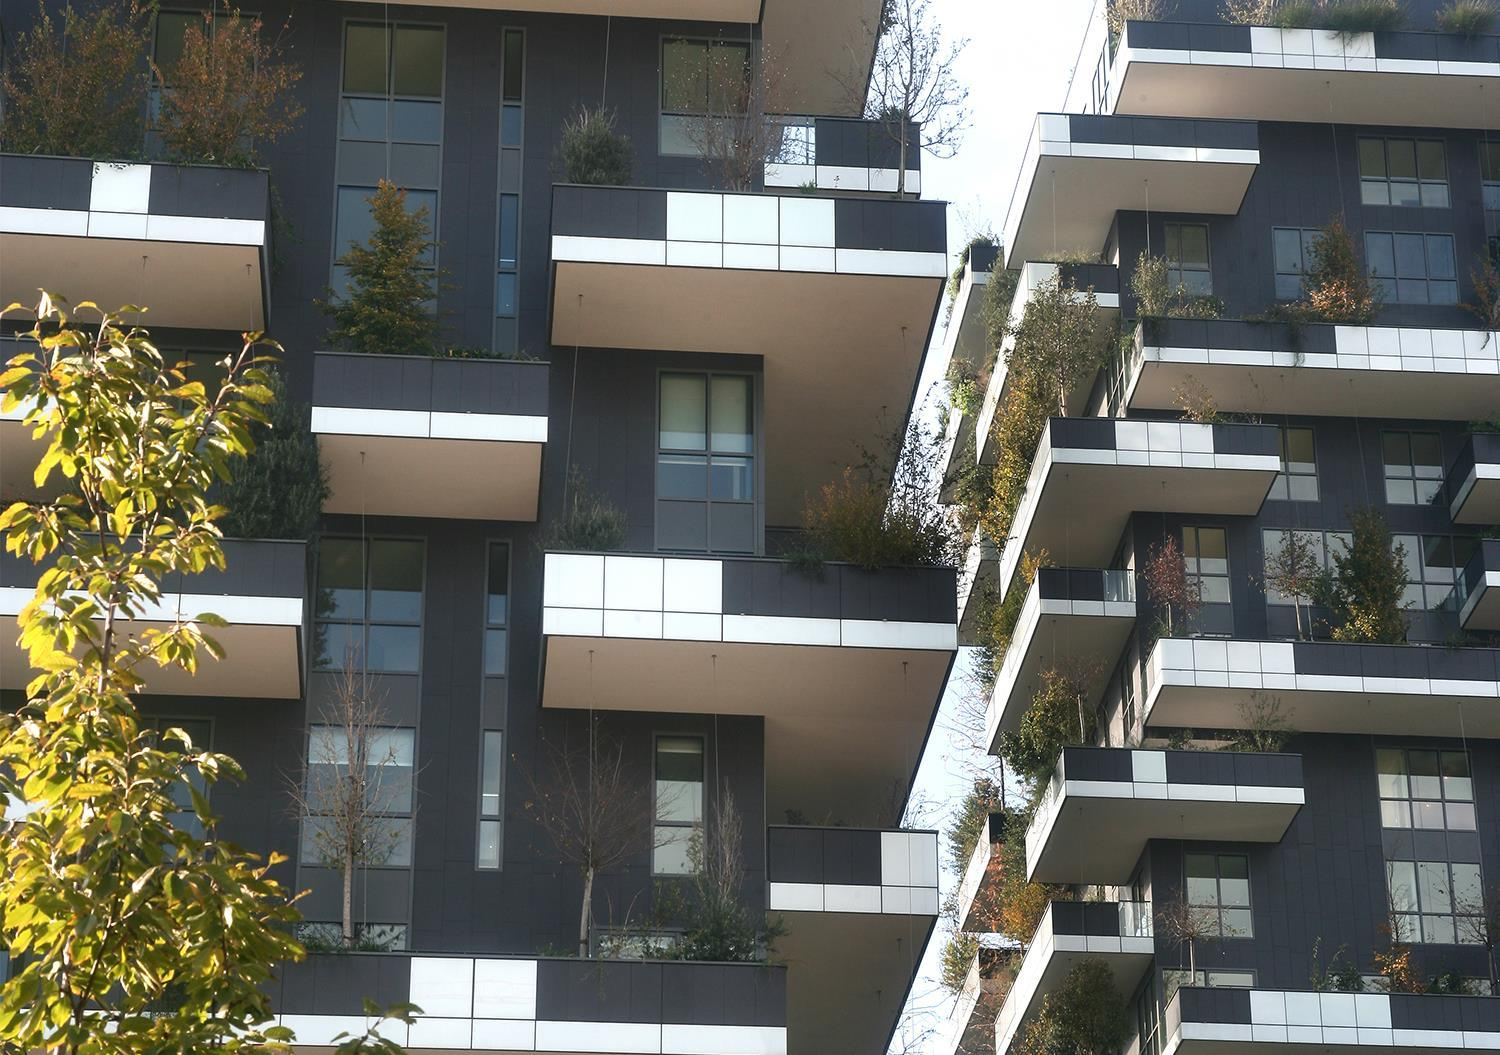 Bosco verticale: Photo 4